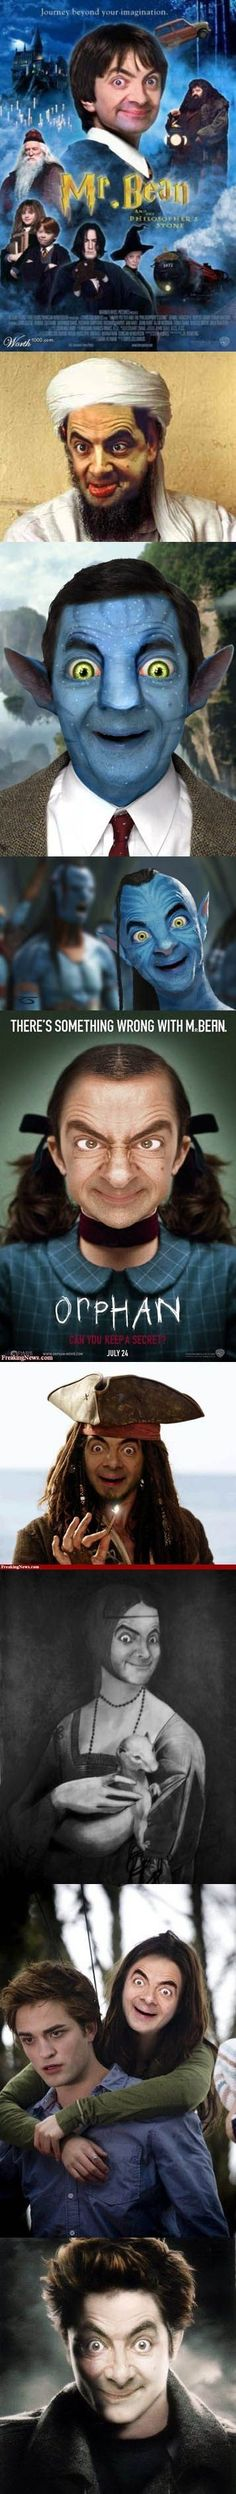 Just Mr. Bean.